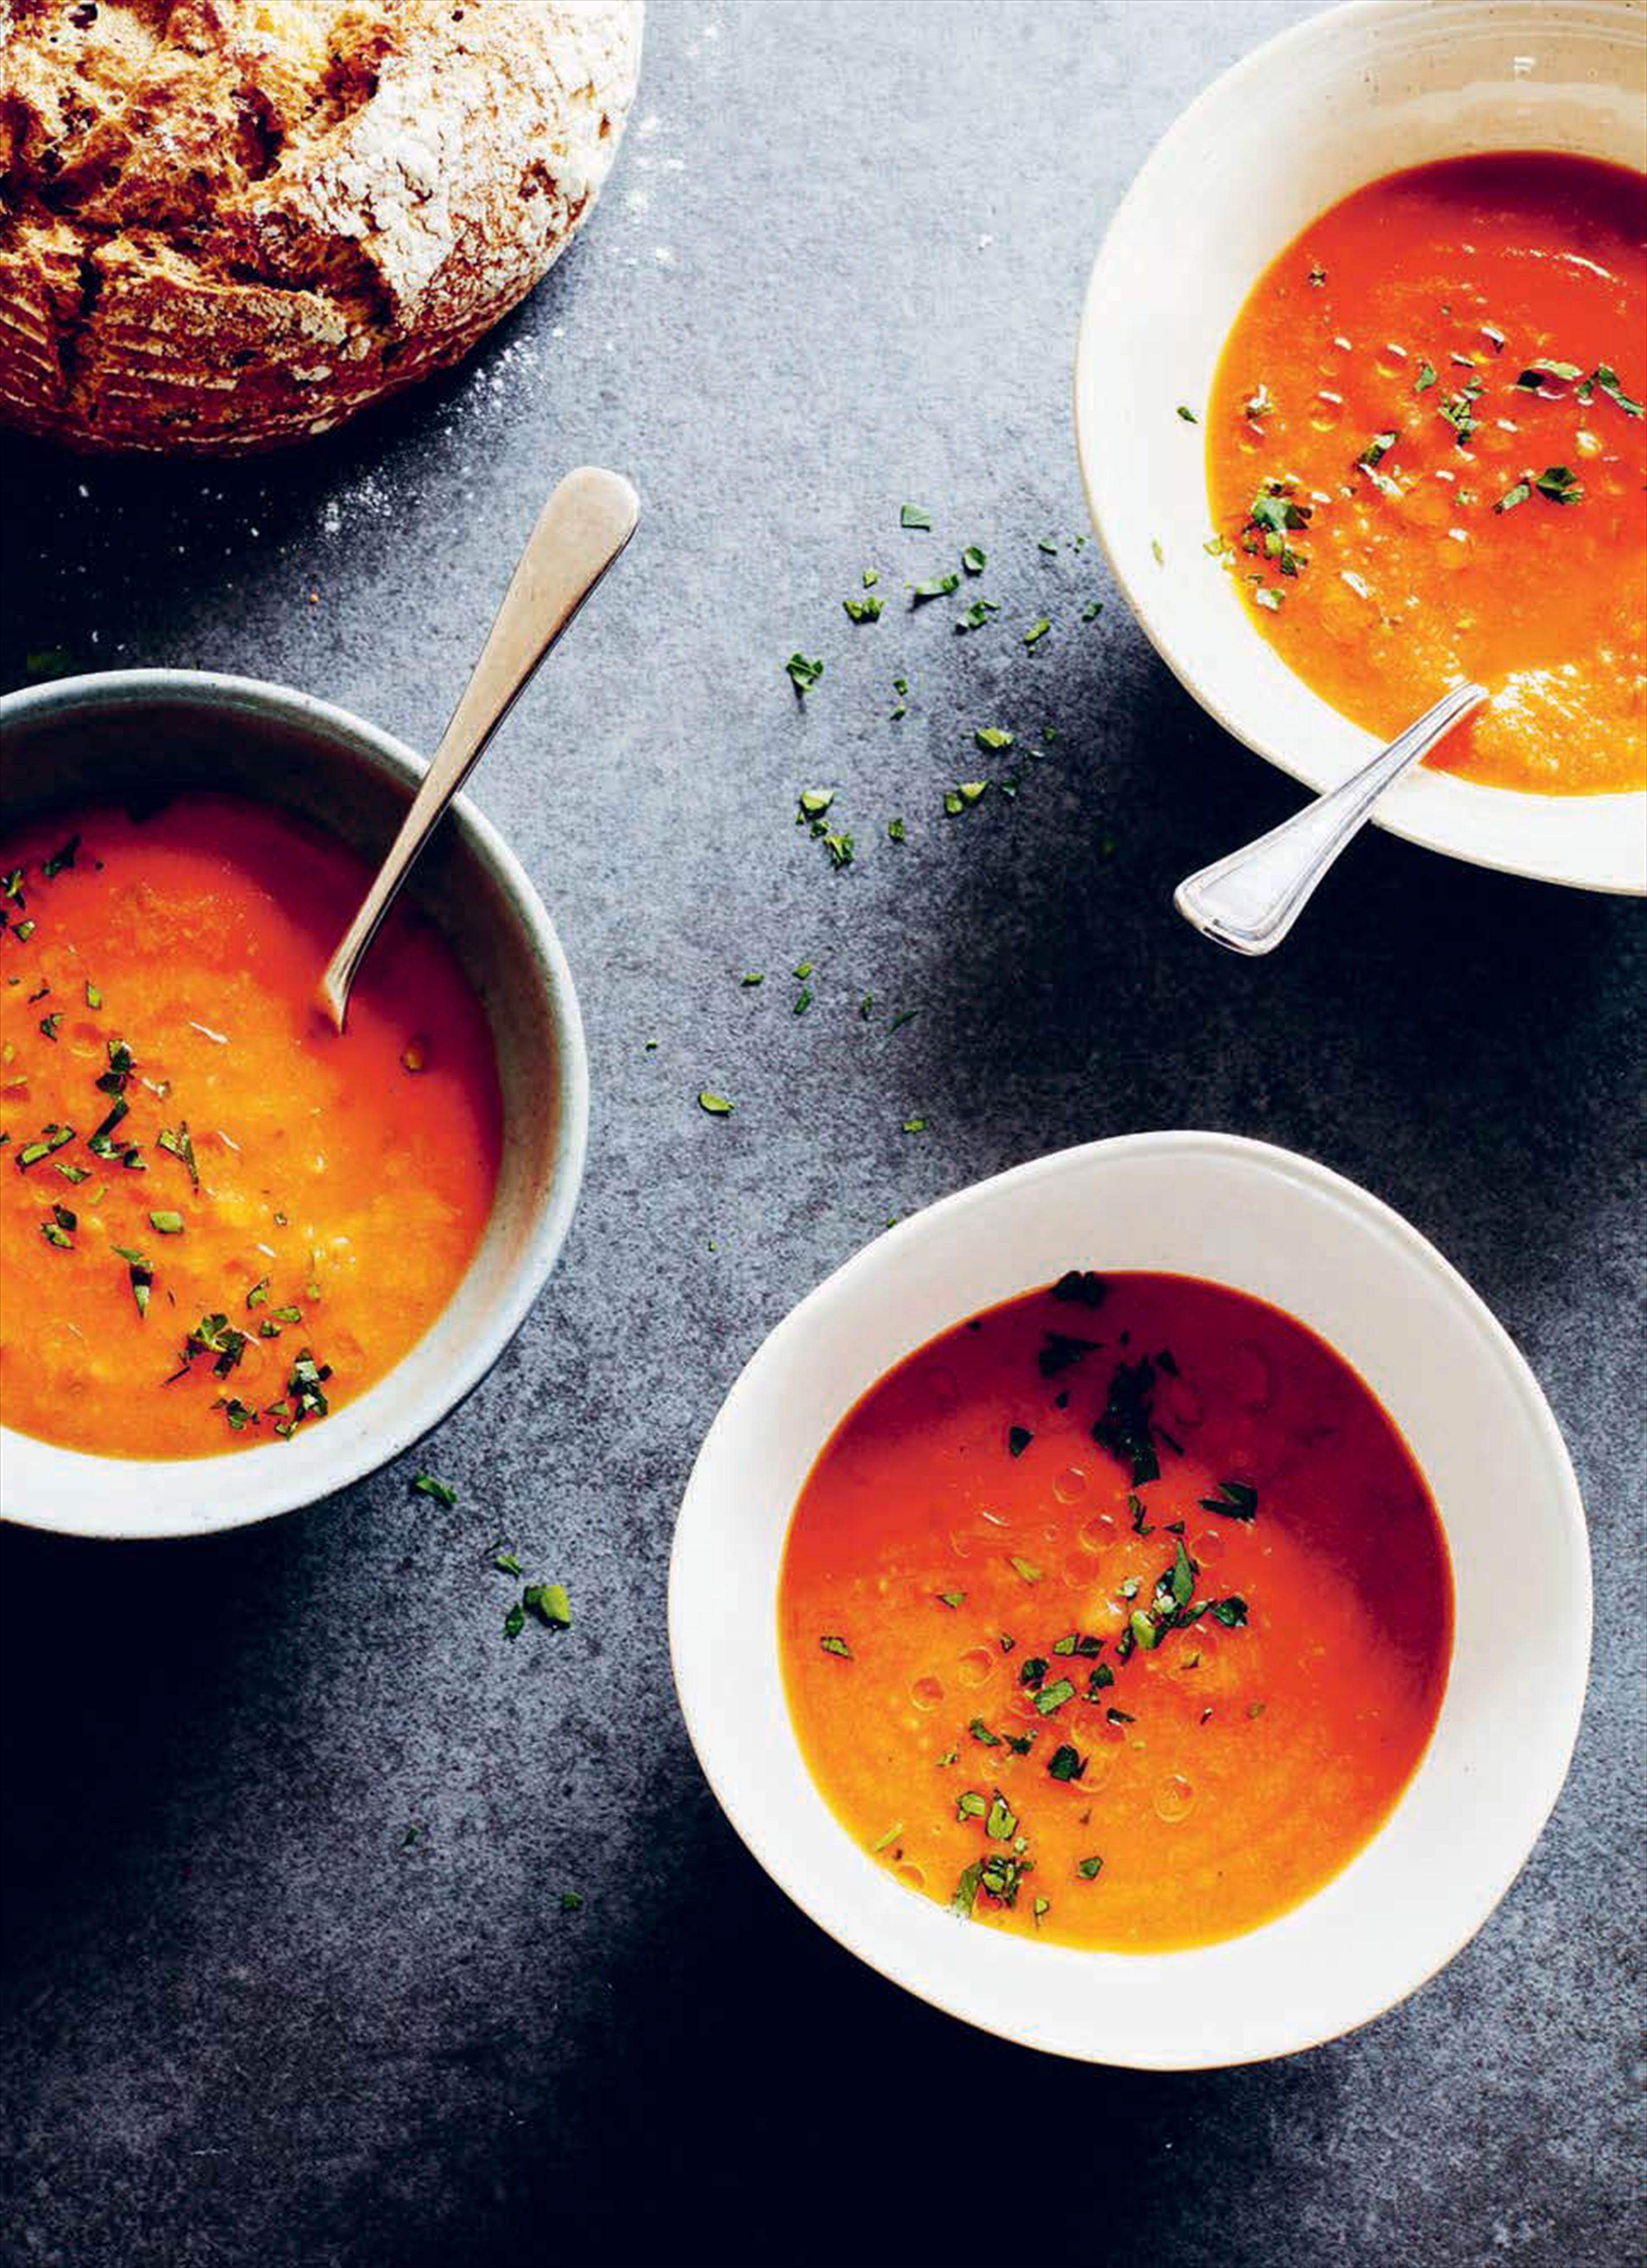 Tomato soup with potatoes and parsley